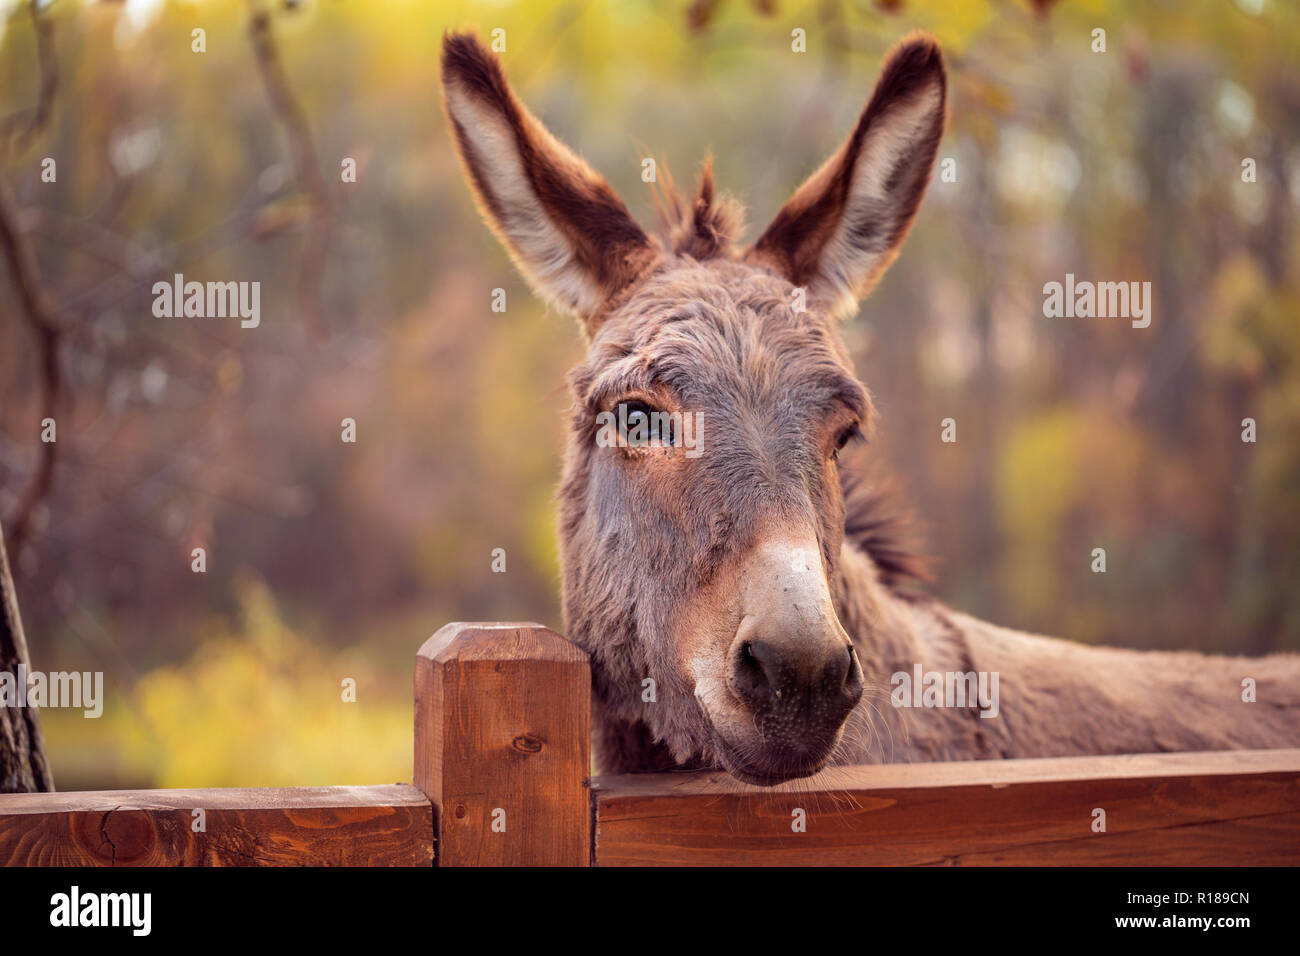 funny brown donkey domesticated member of the horse family - Stock Image